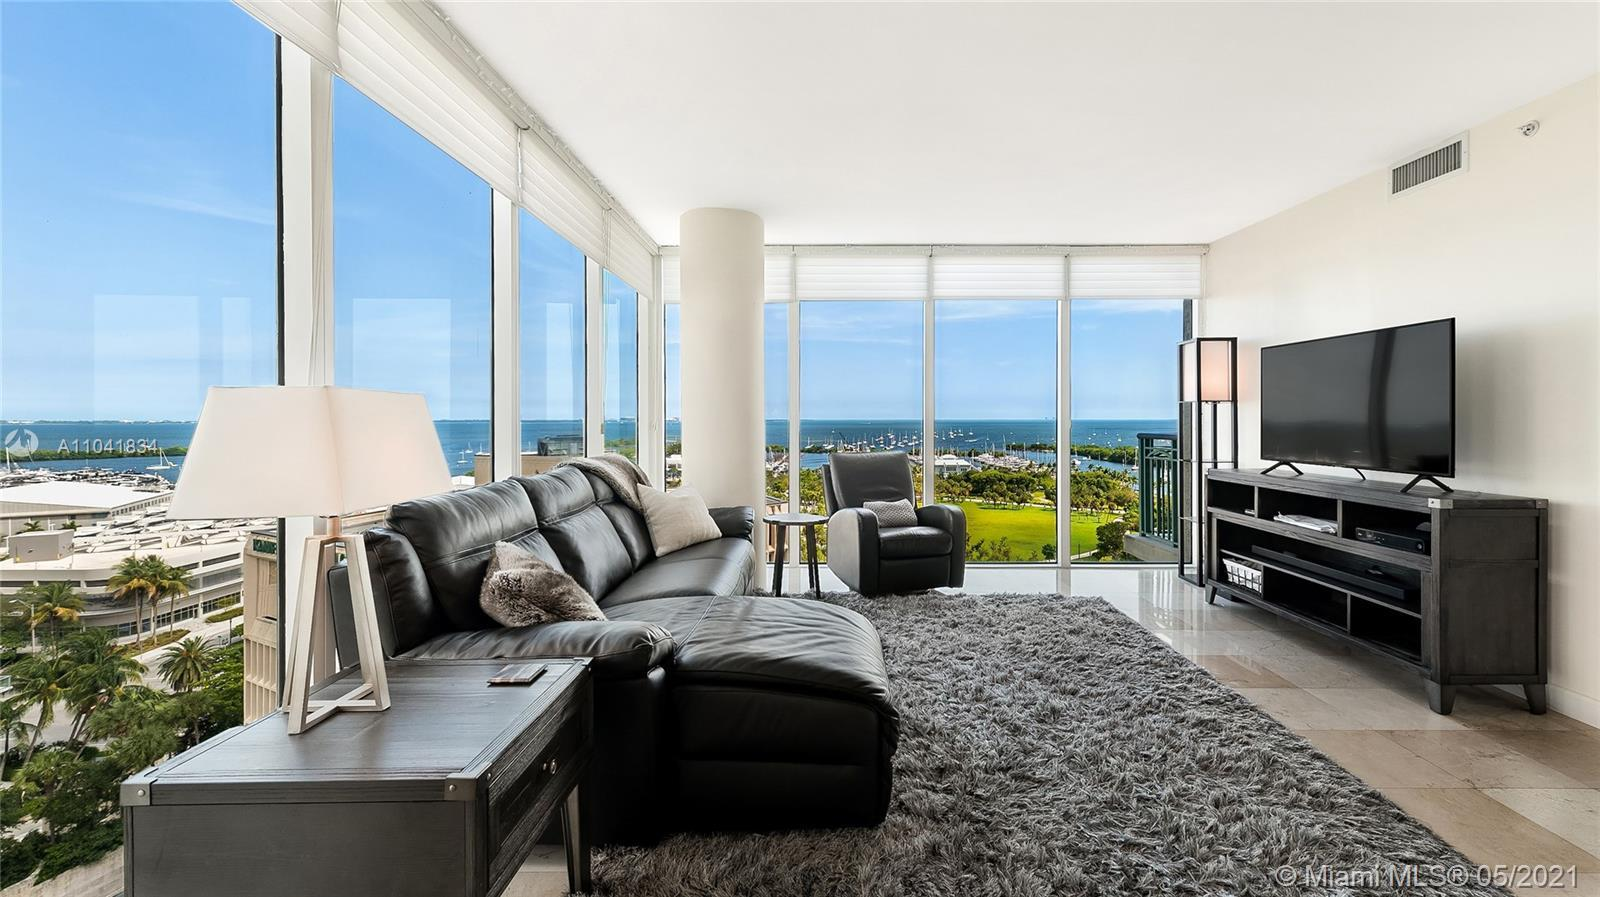 Incredible opportunity to live in a high-floor corner unit with unobstructed water views in the excl